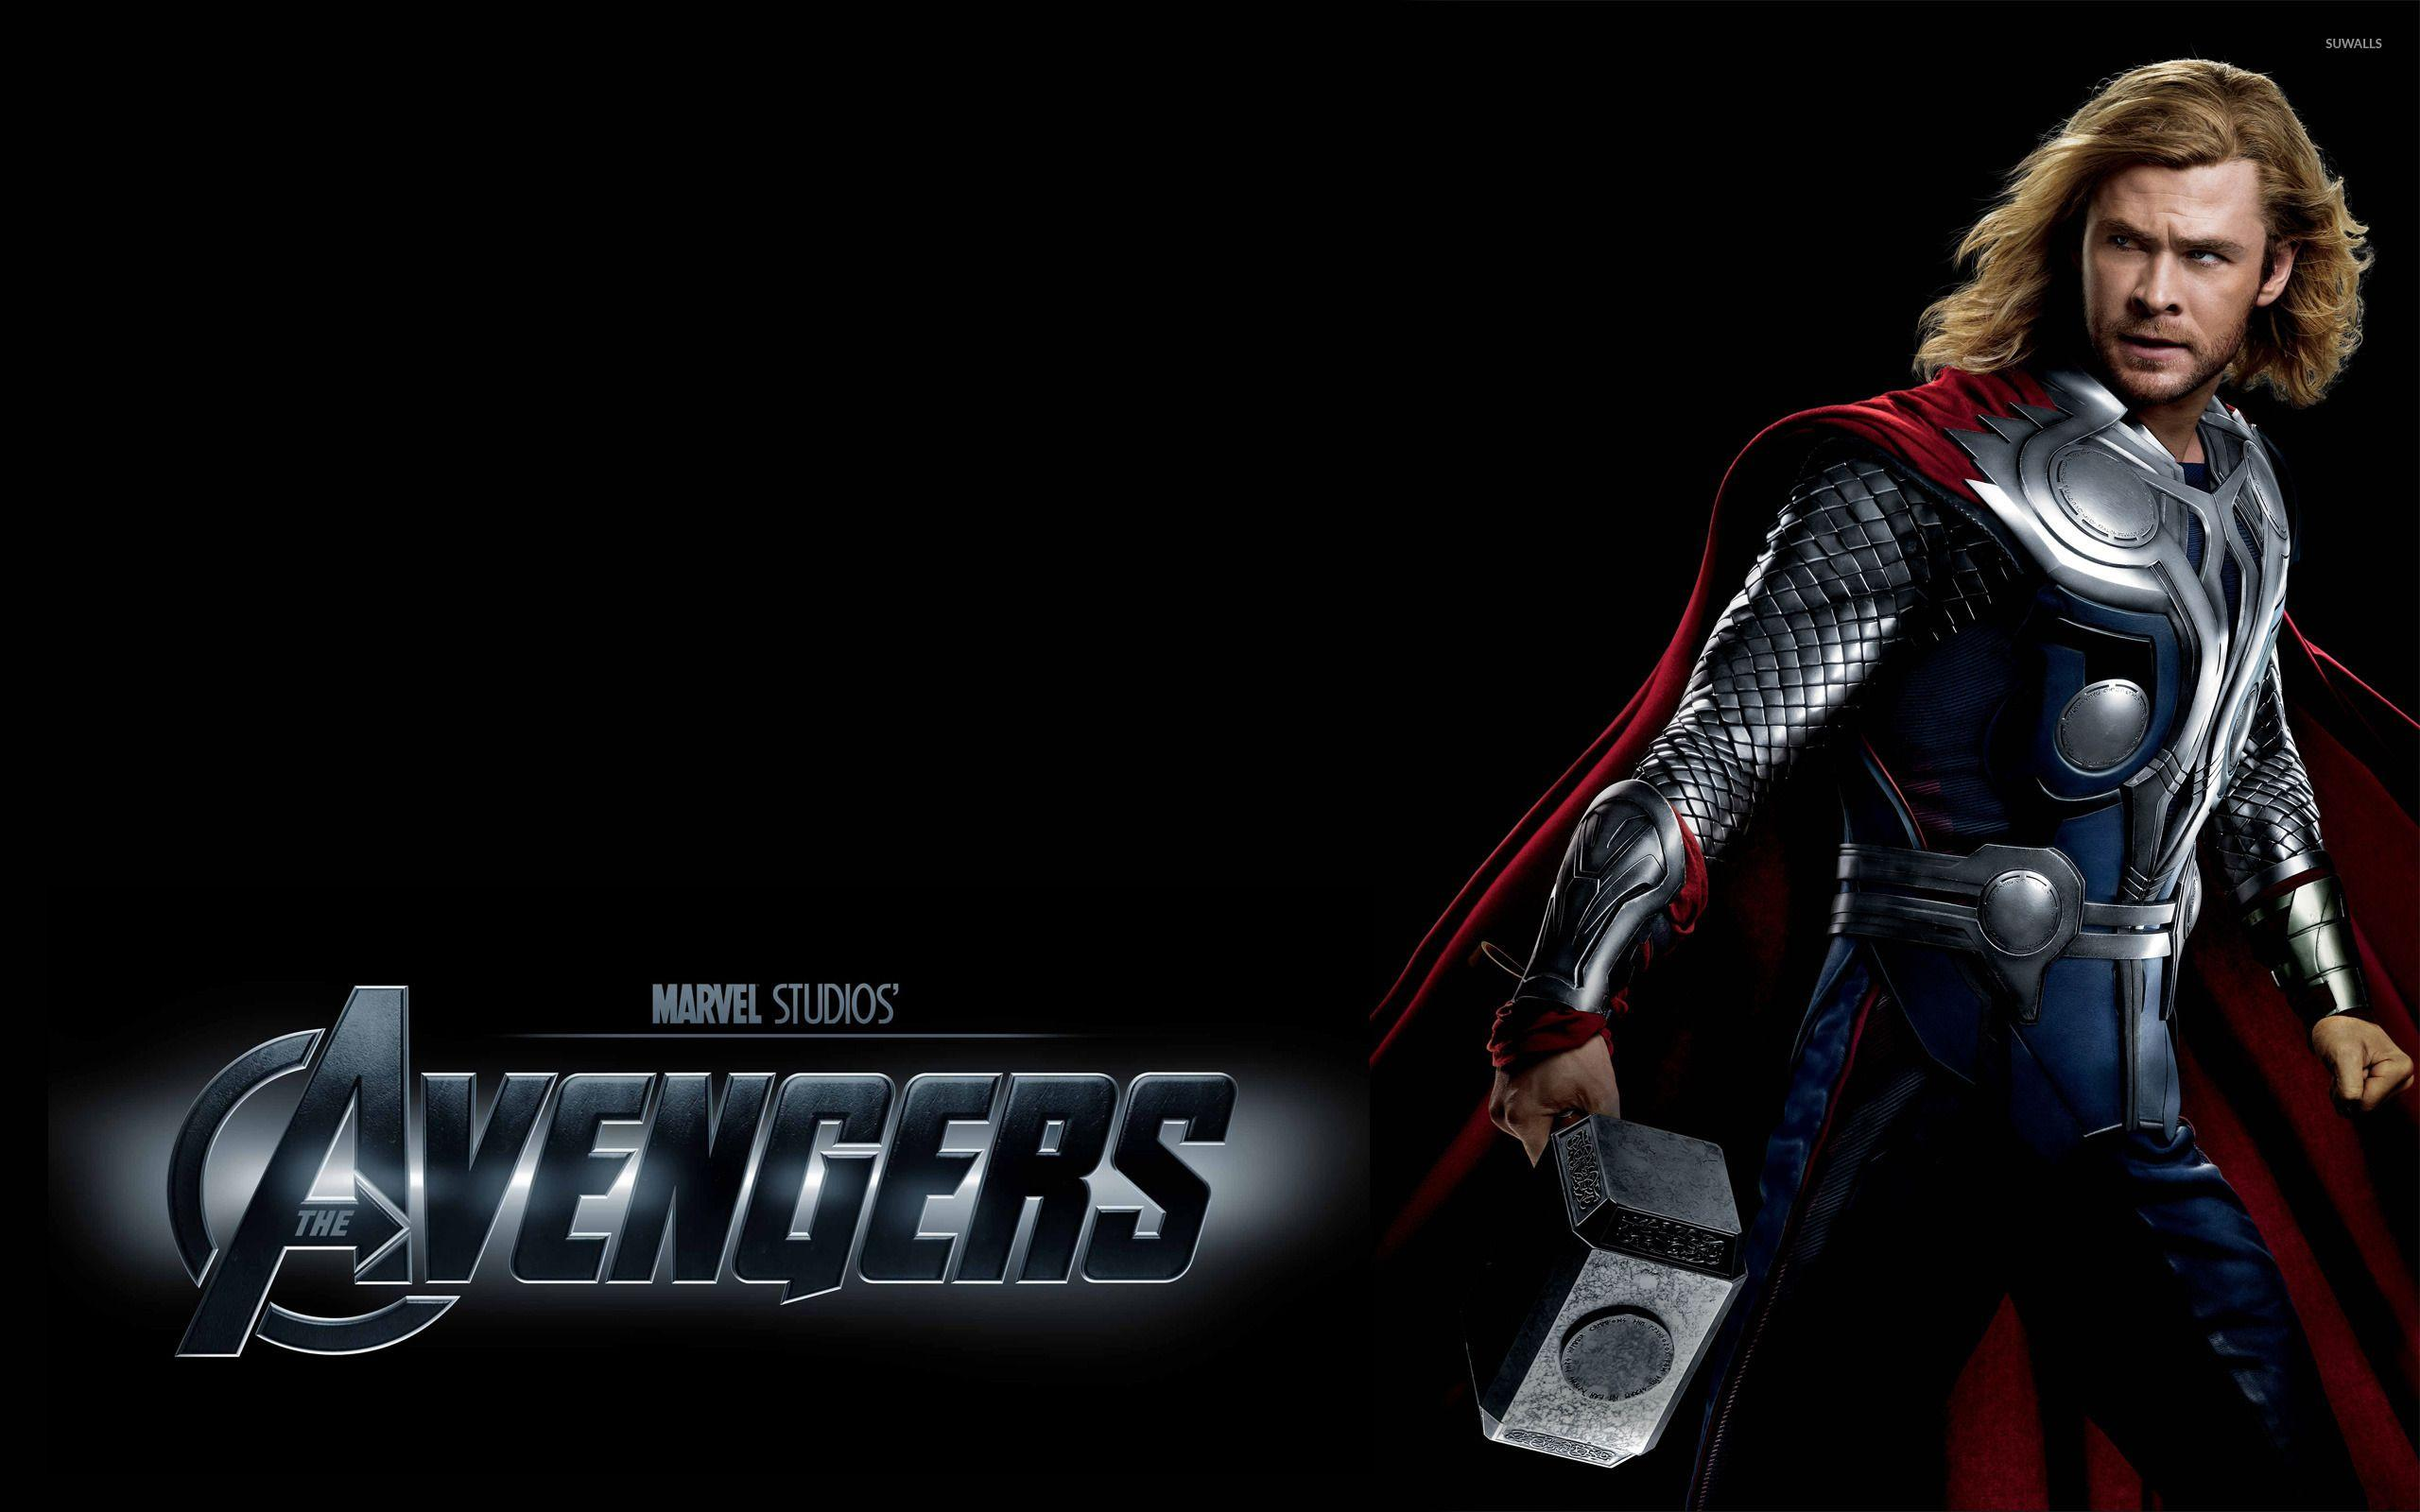 Movies Thor in The Avengers wallpapers